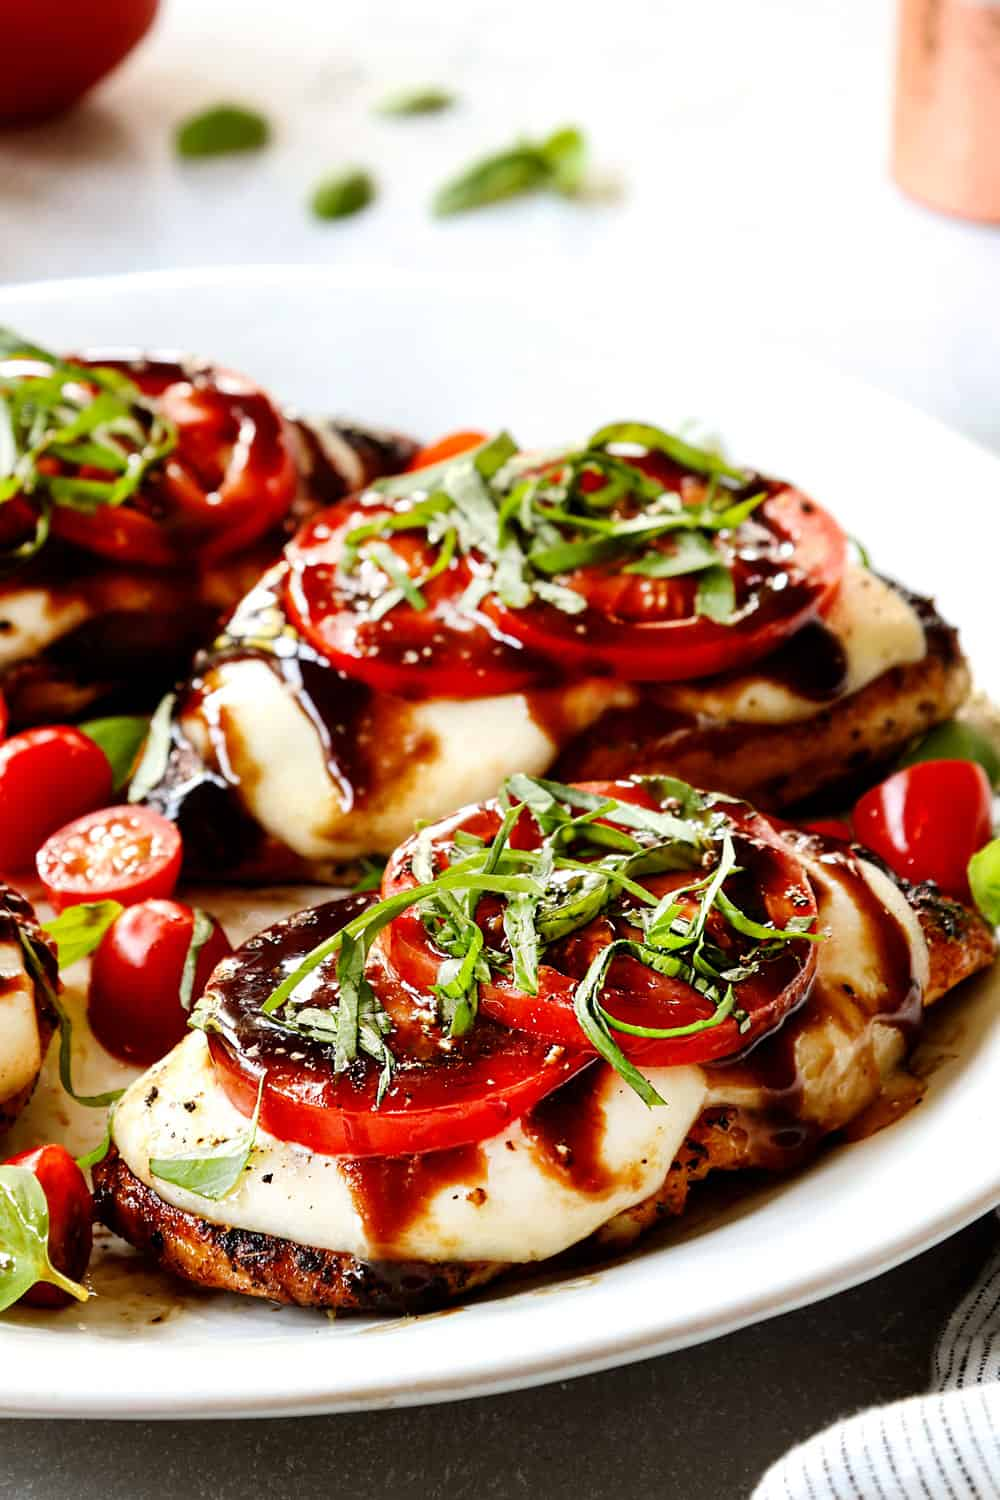 up close of chicken Caprese showing how cheesy it is layered with mozzarella cheese, tomato slices, basil and balsamic reduction